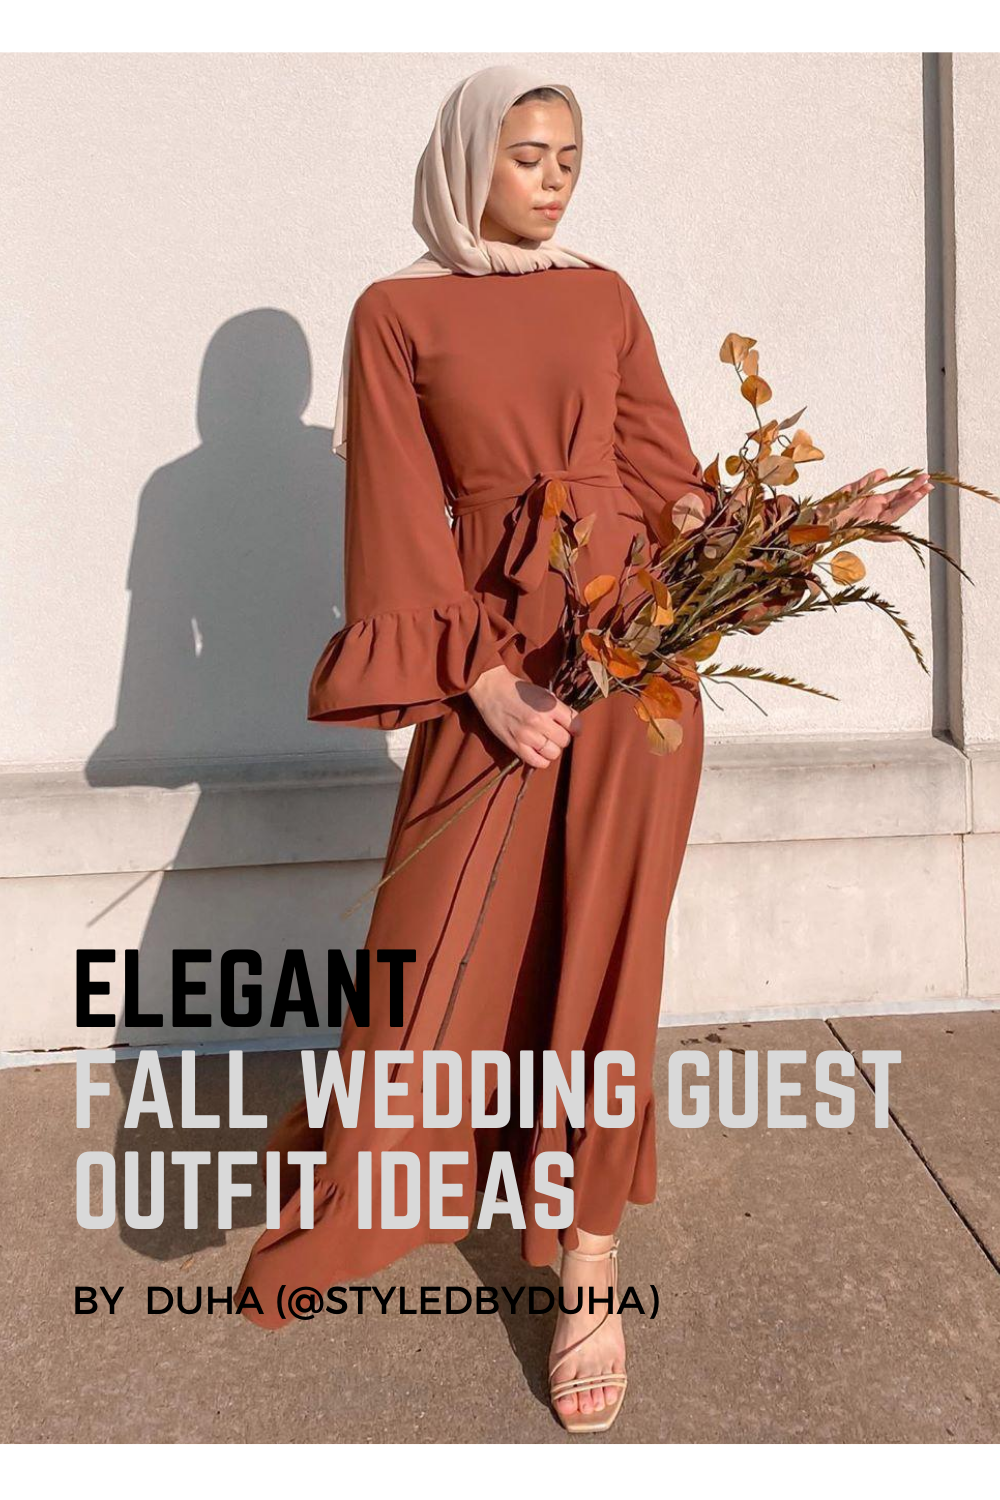 Elegant Fall Wedding Guest Outfit Ideas